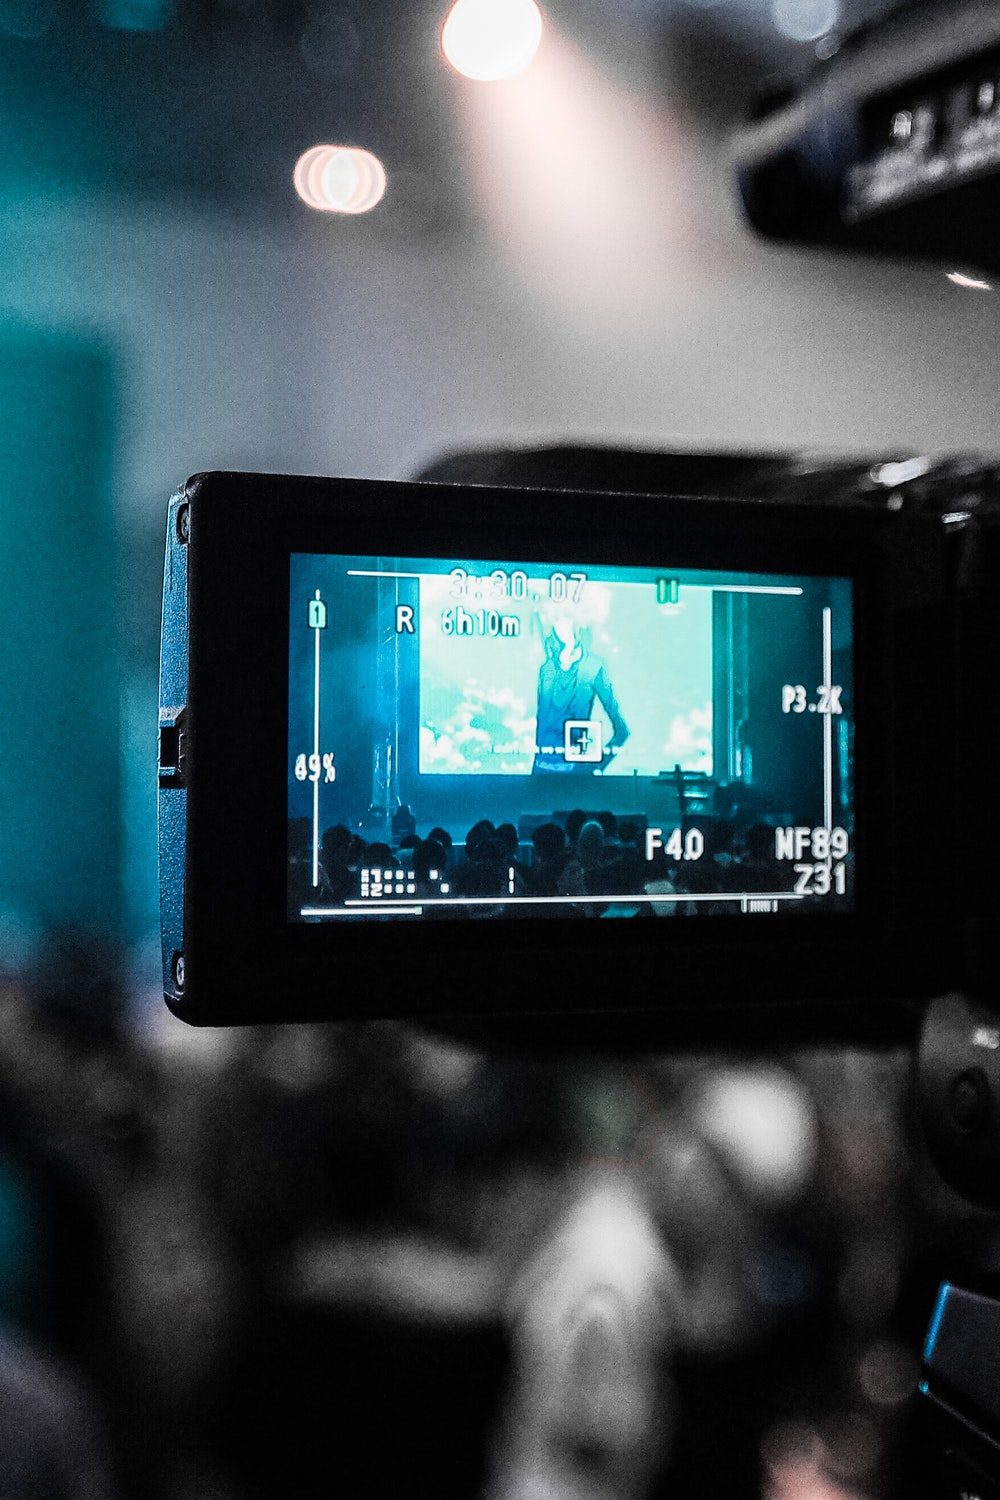 Video Production    Whether it's for commercial or private use,    you want your ideas to be displayed in the    highest quality possible. With years of    experience in producing video, we make that    easy for you. You give us your vision and we    make it a reality.